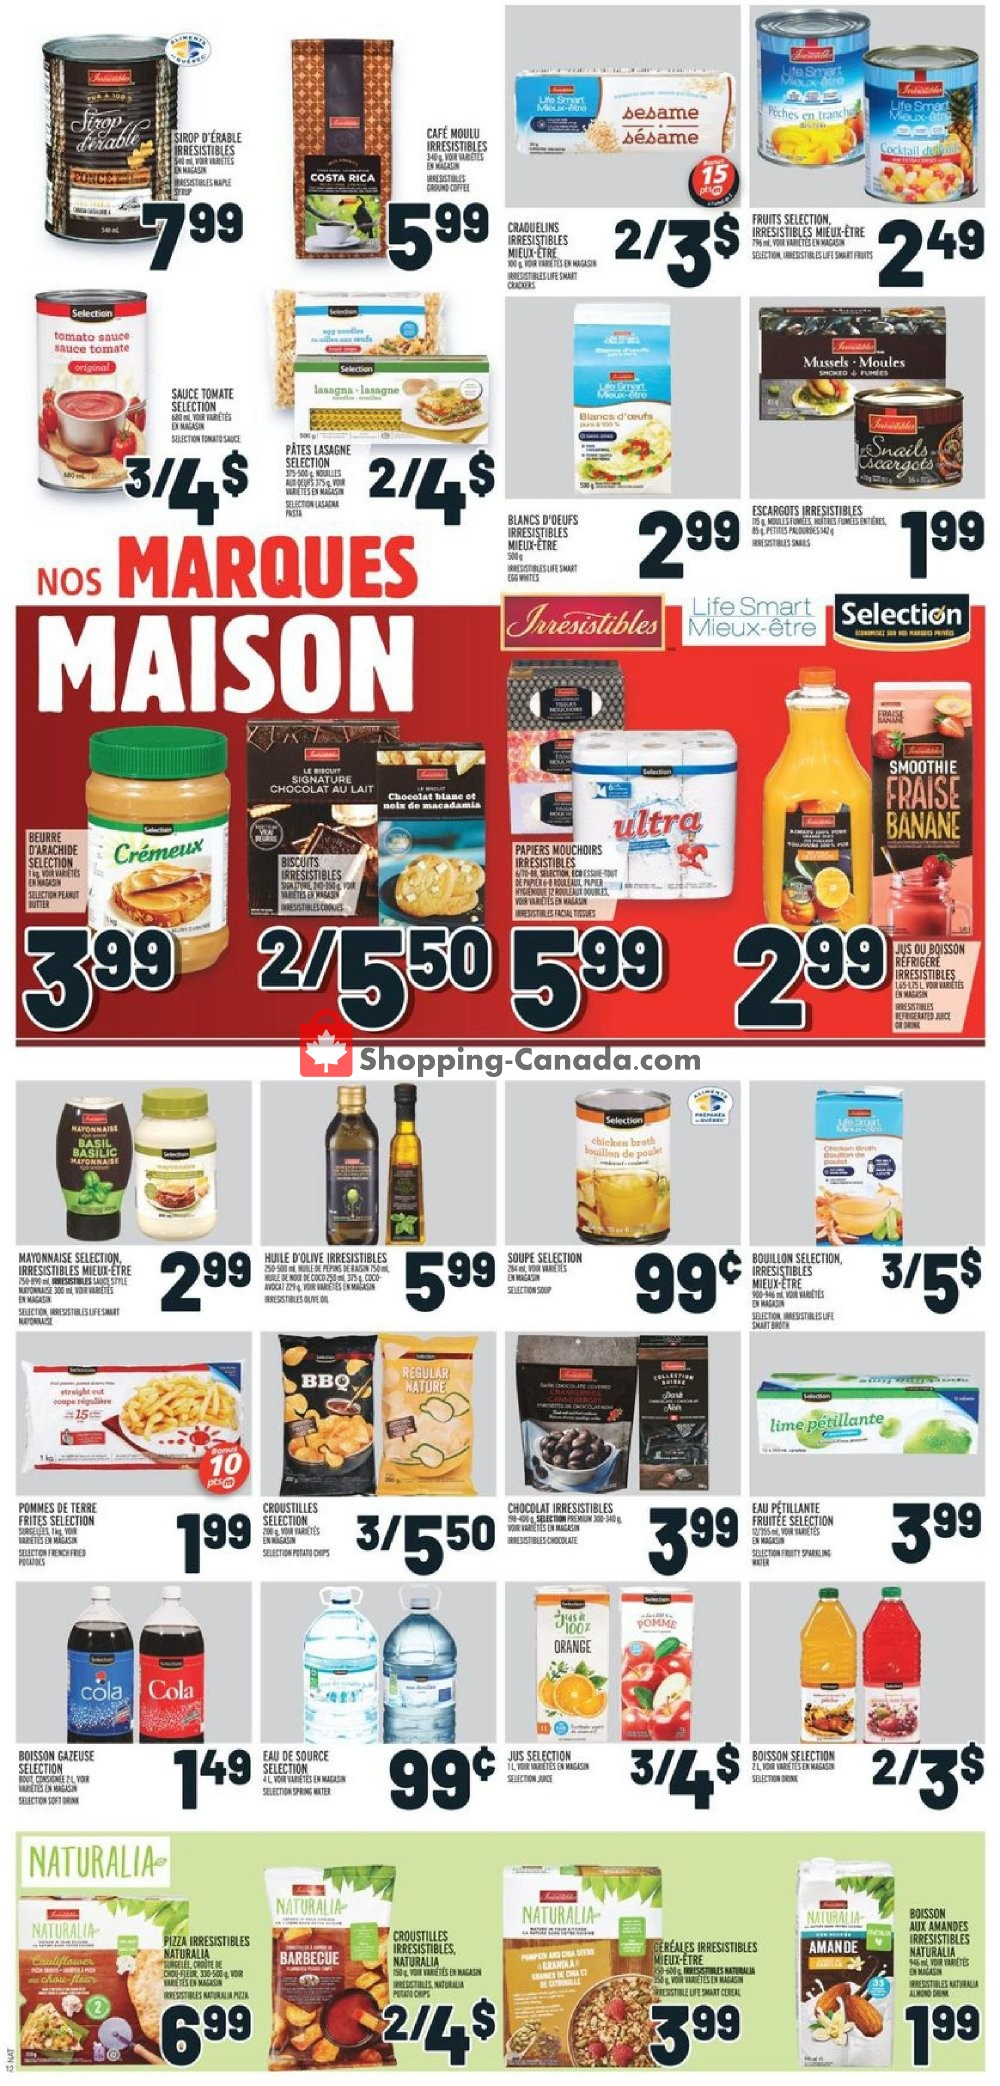 Flyer Metro Canada - from Thursday October 10, 2019 to Wednesday October 16, 2019